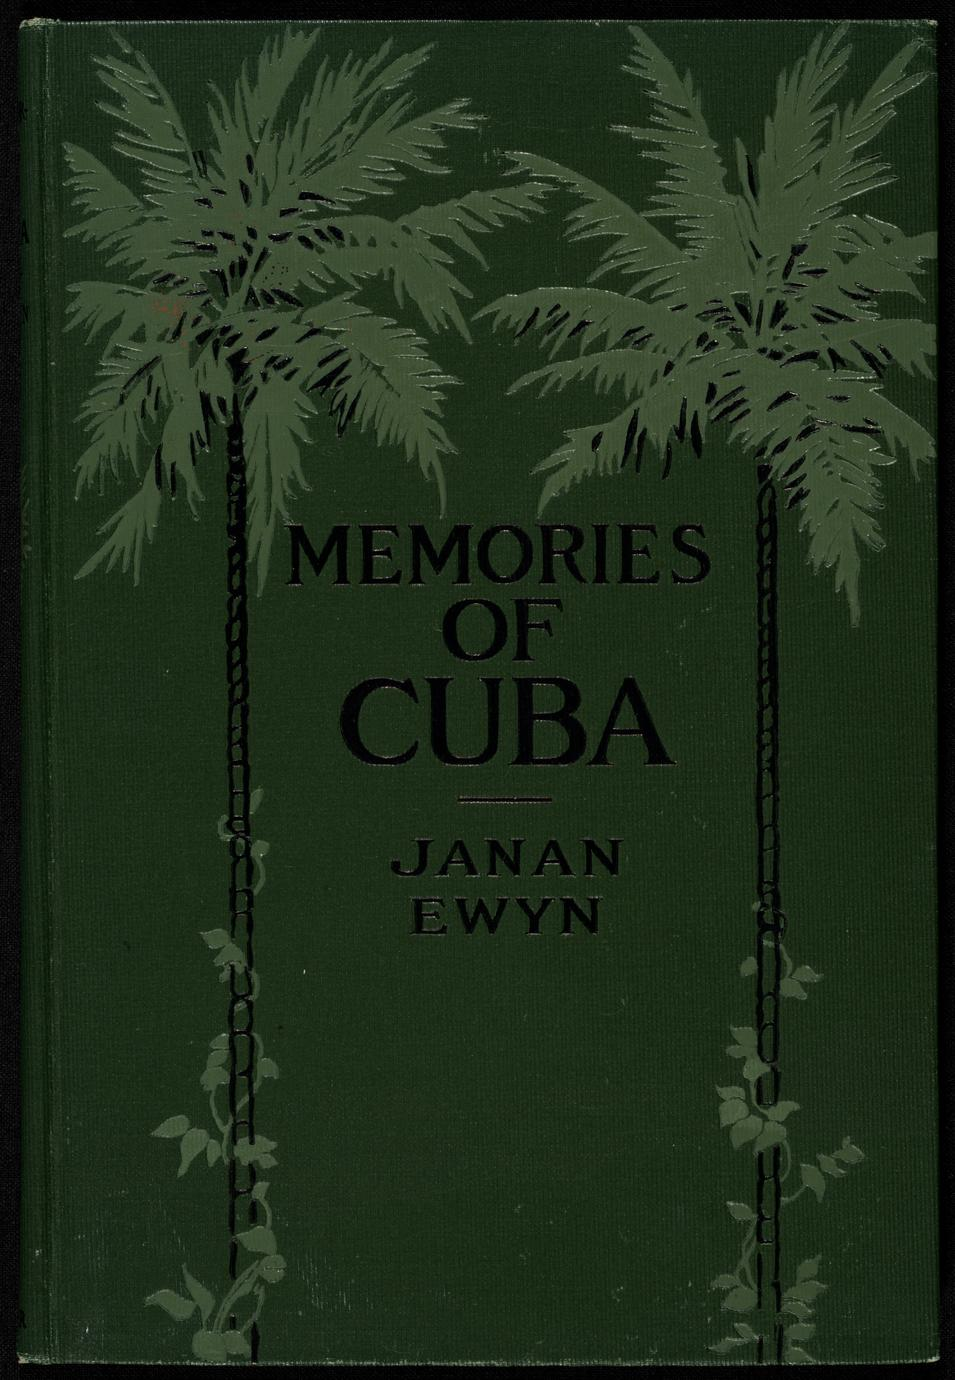 Memories of Cuba and other poems (1 of 3)